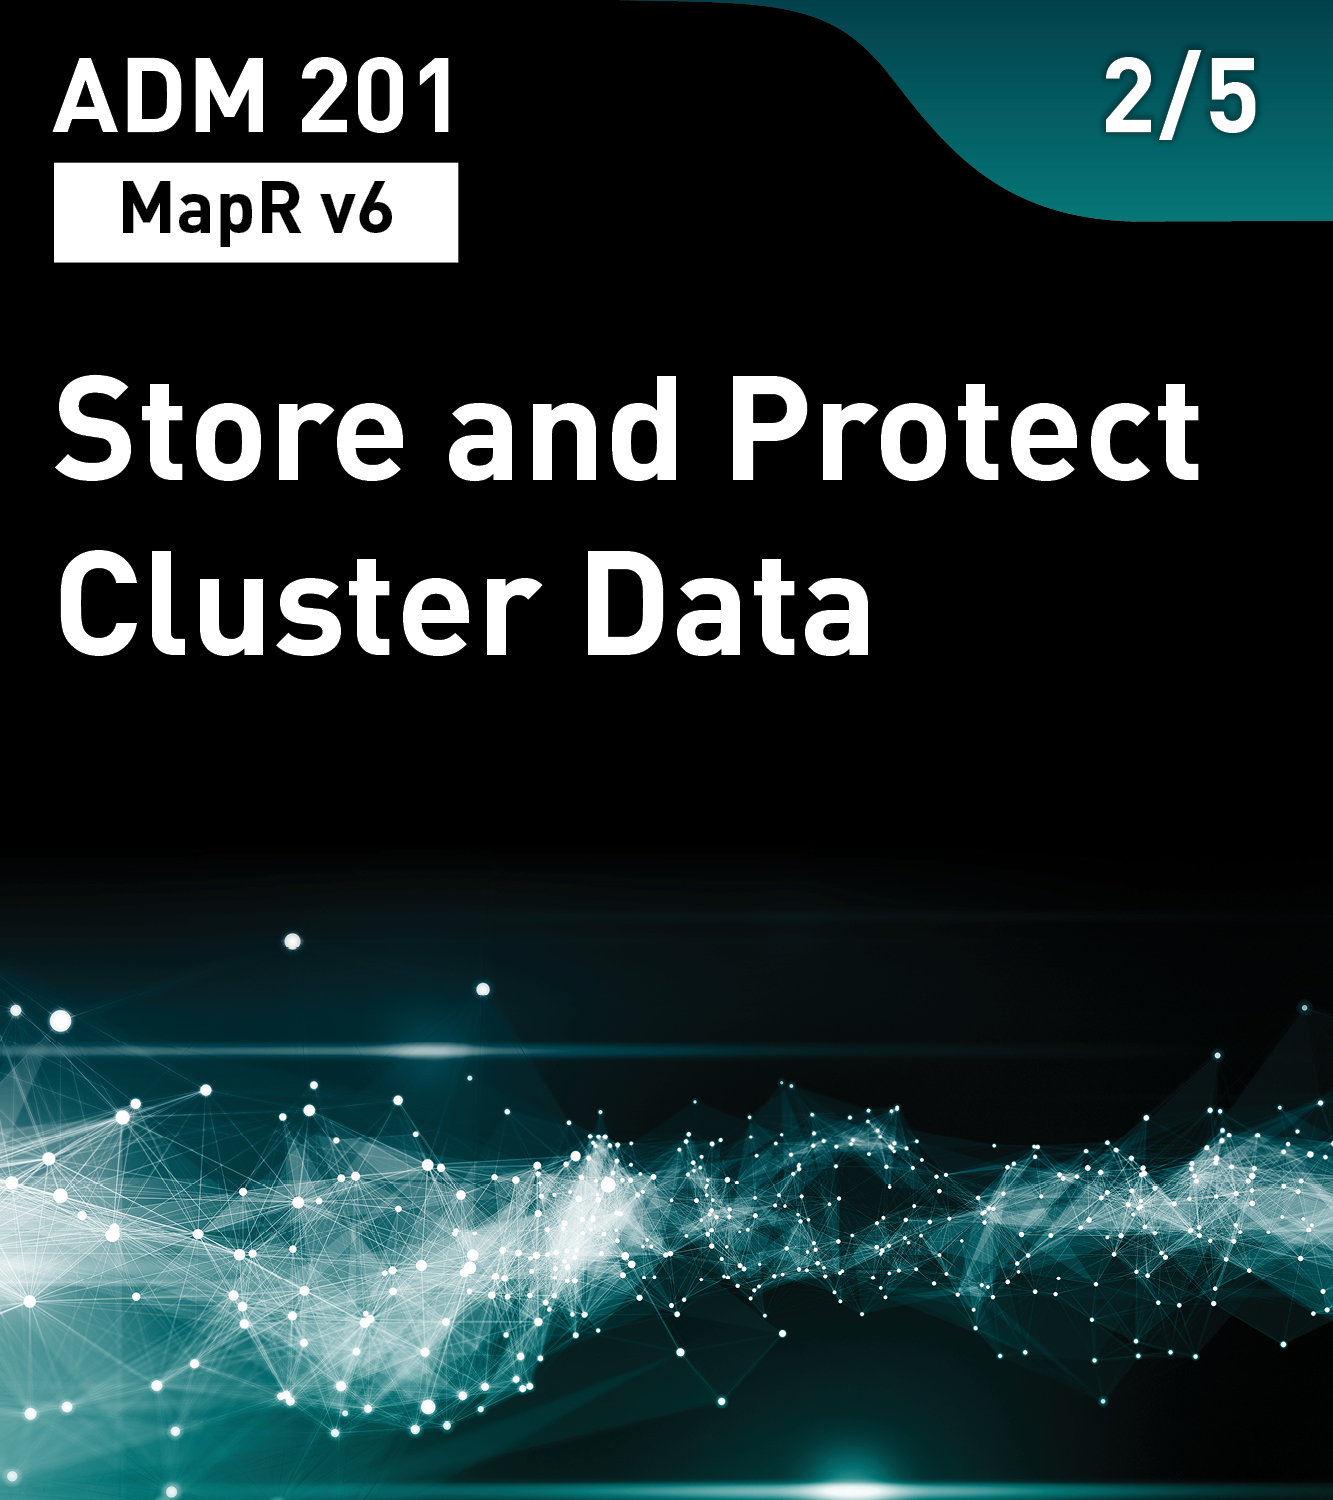 ADM 201 - Store and Protect Cluster Data (MapR v6)